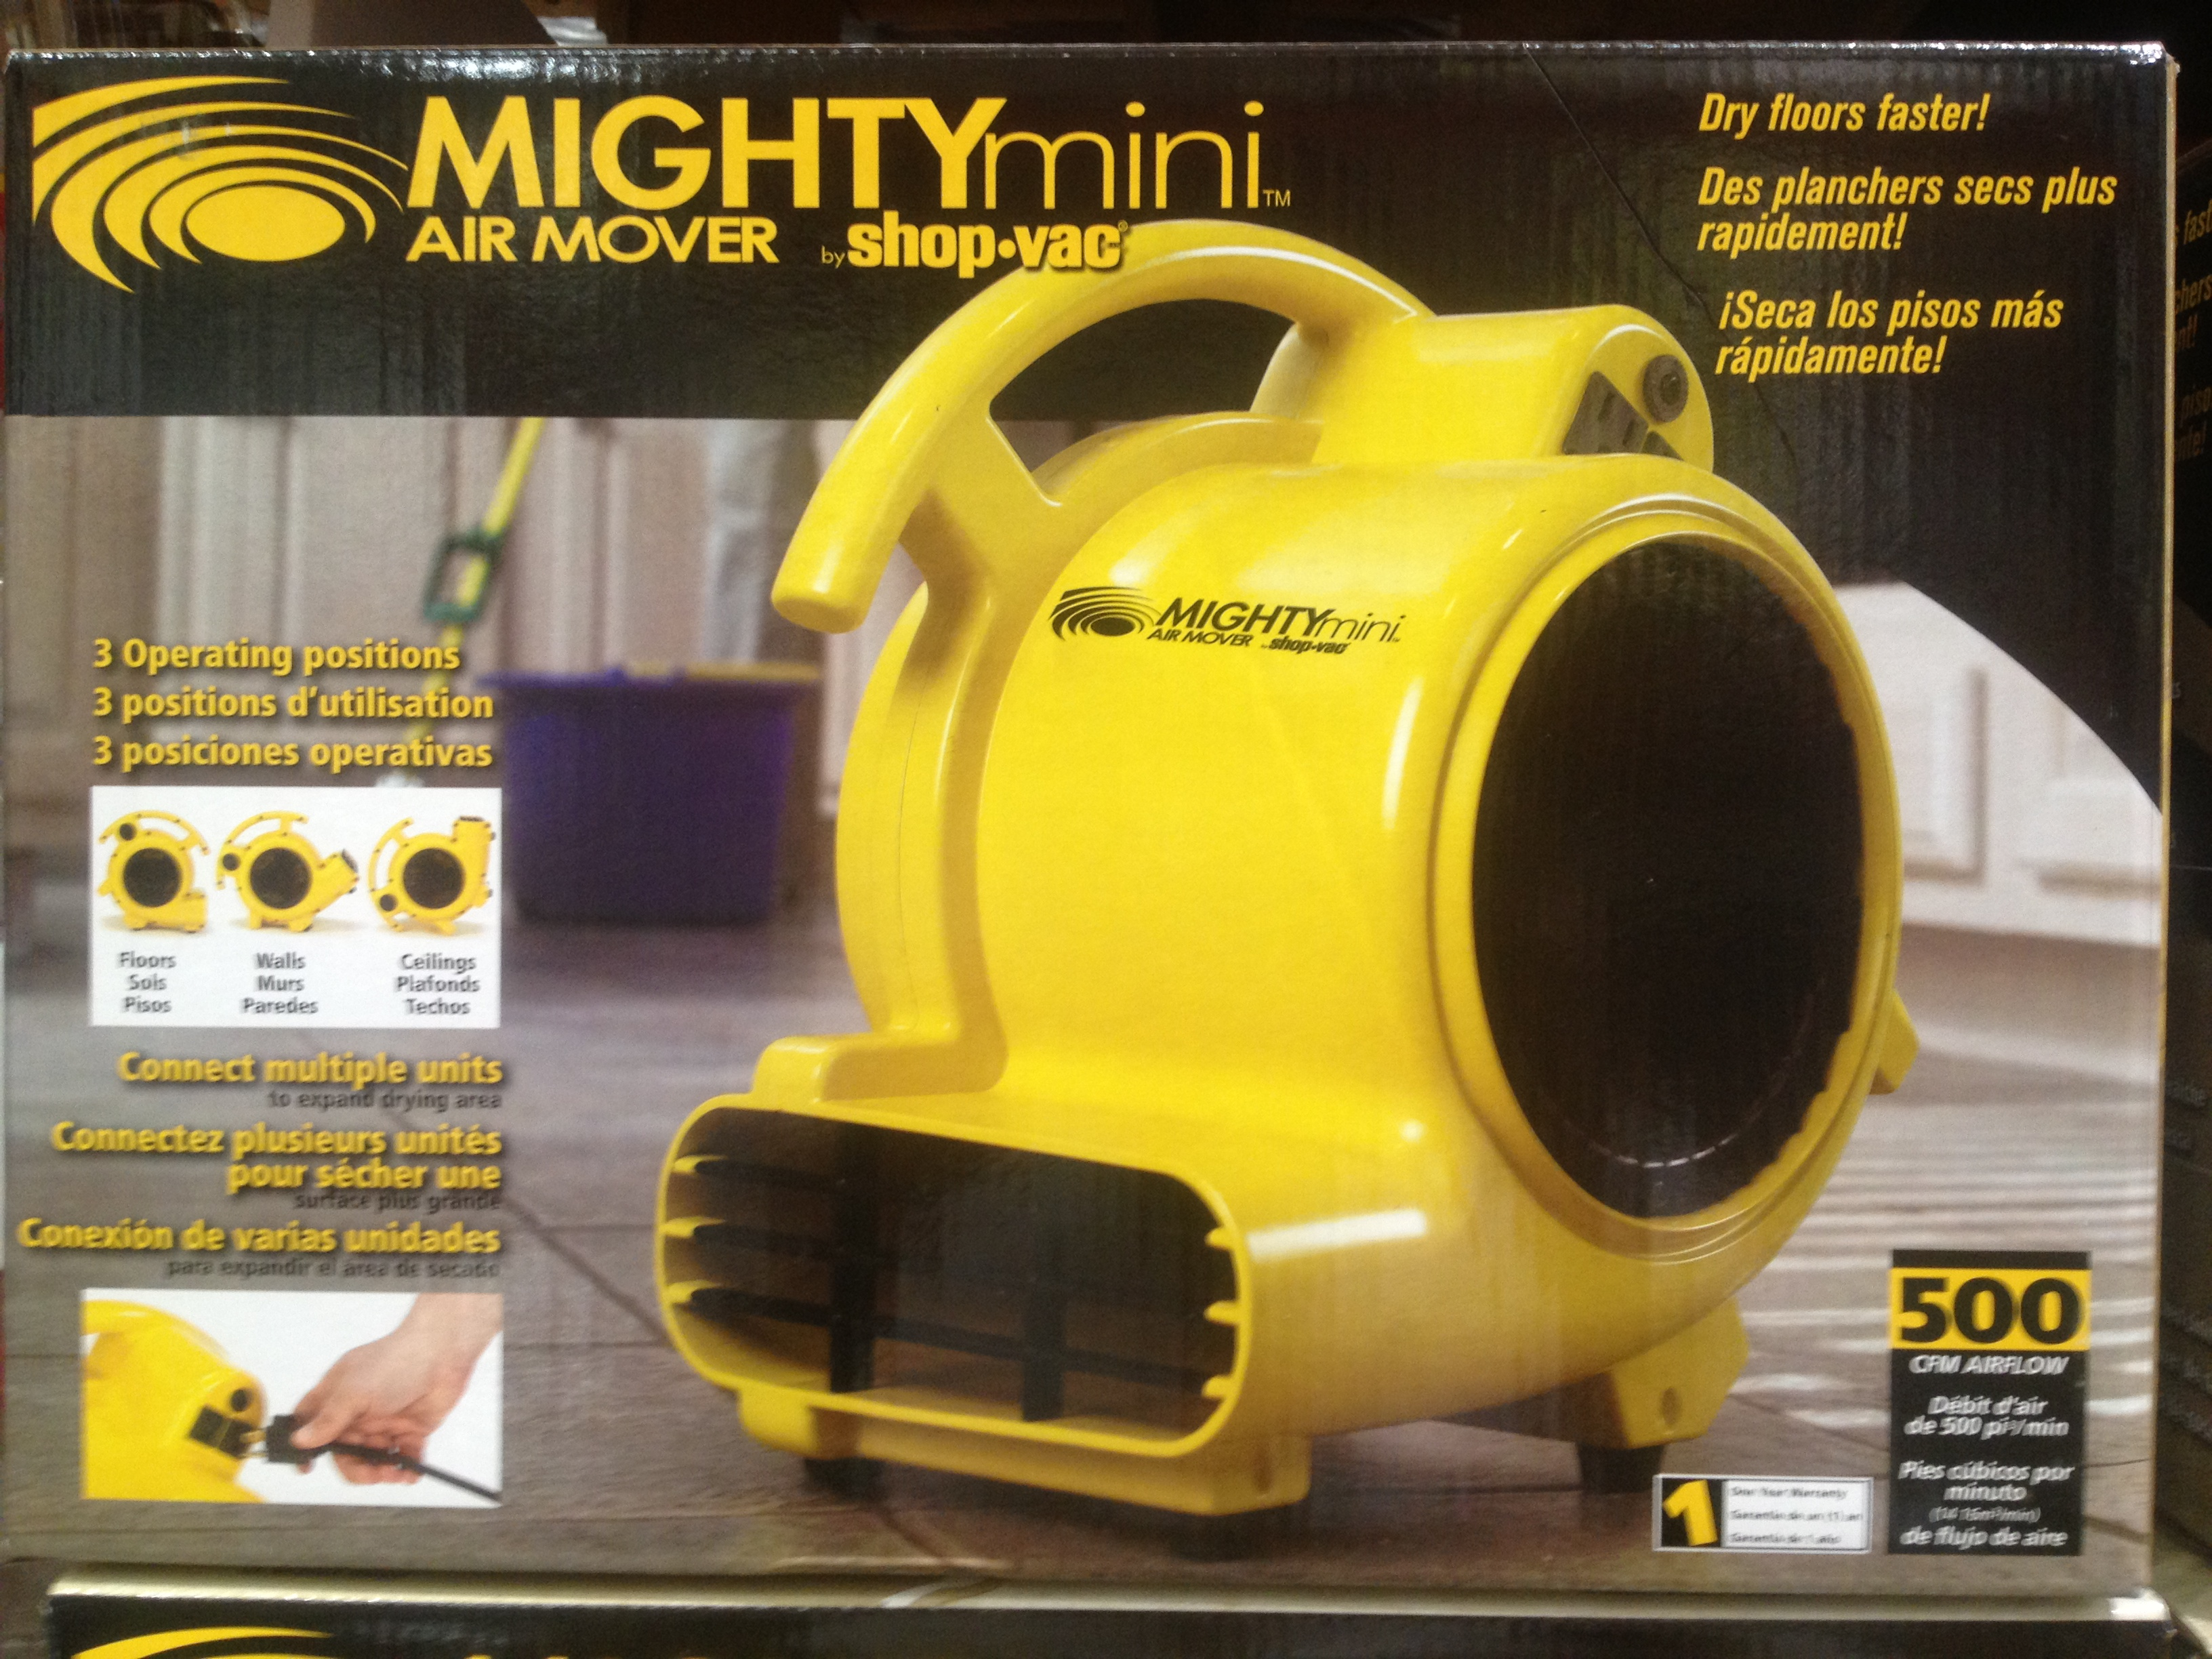 Costco  item number 684584  ShopVac 3 Speed Mighty Mini